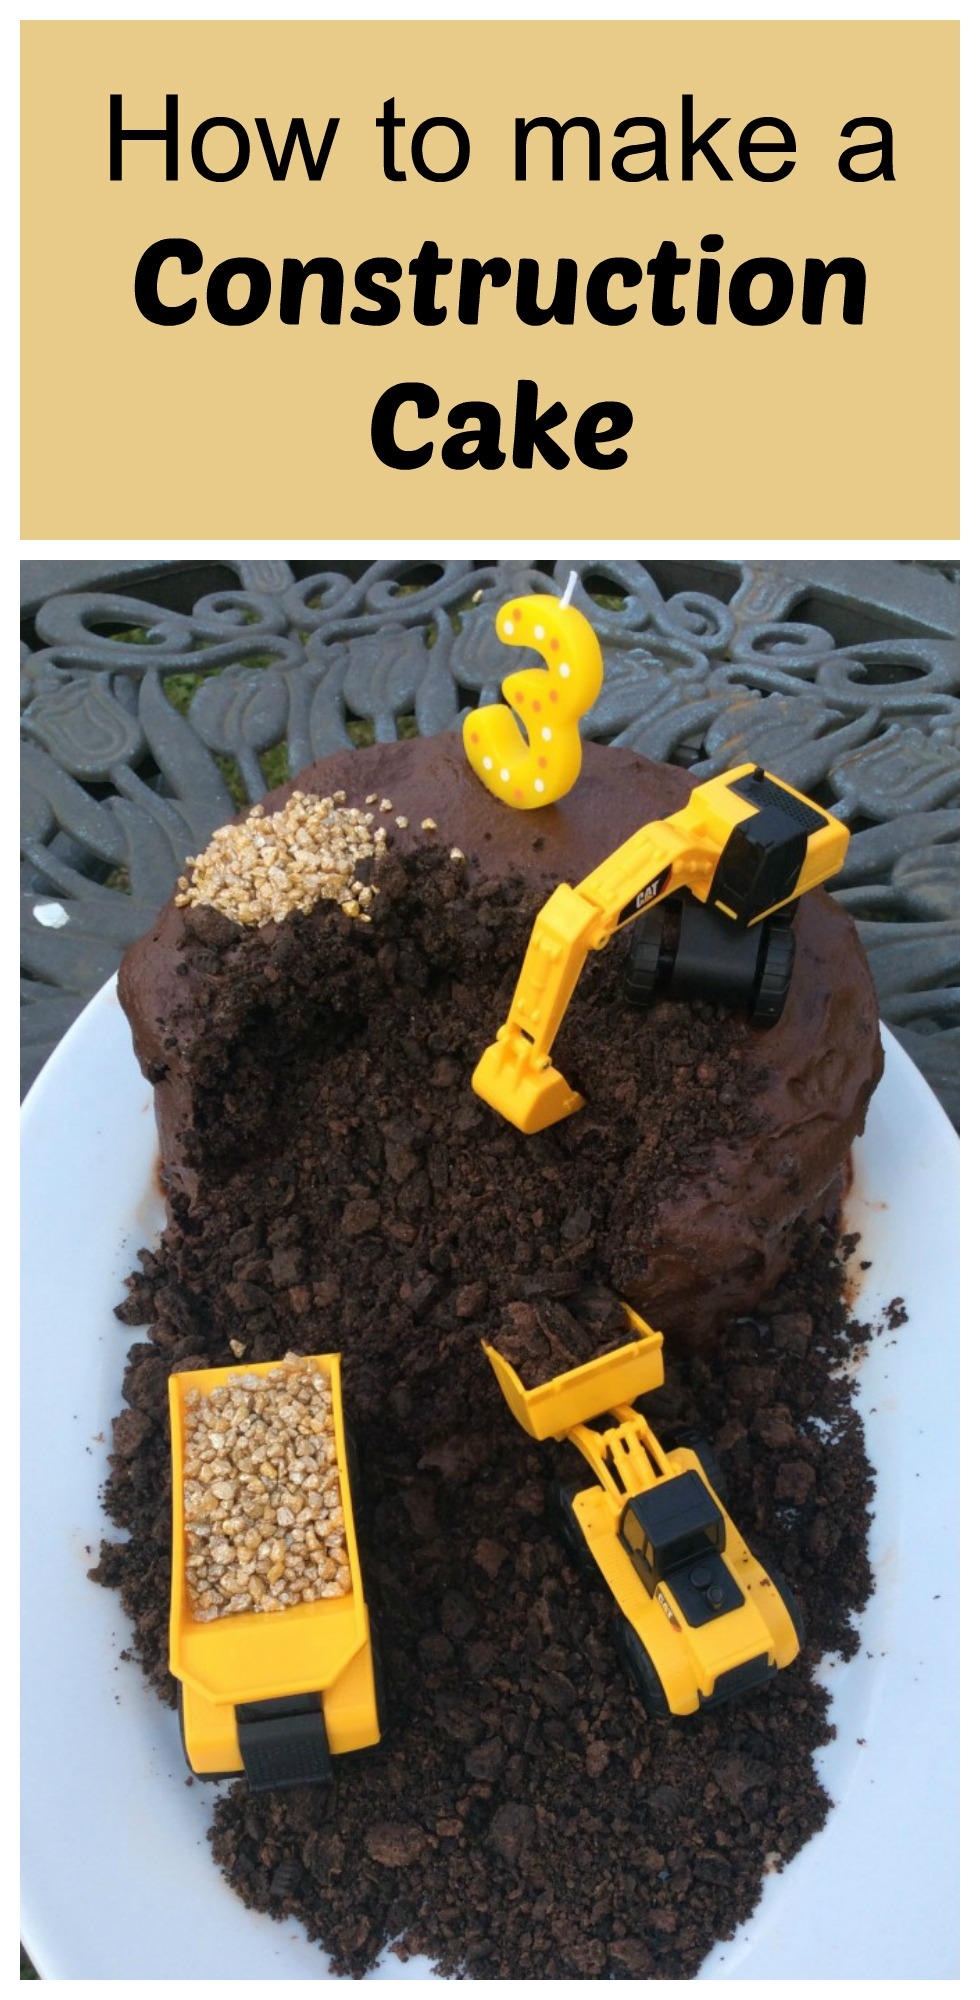 This Construction Cake Complete With Diggers And Dump Trucks Is So Easy To Make But